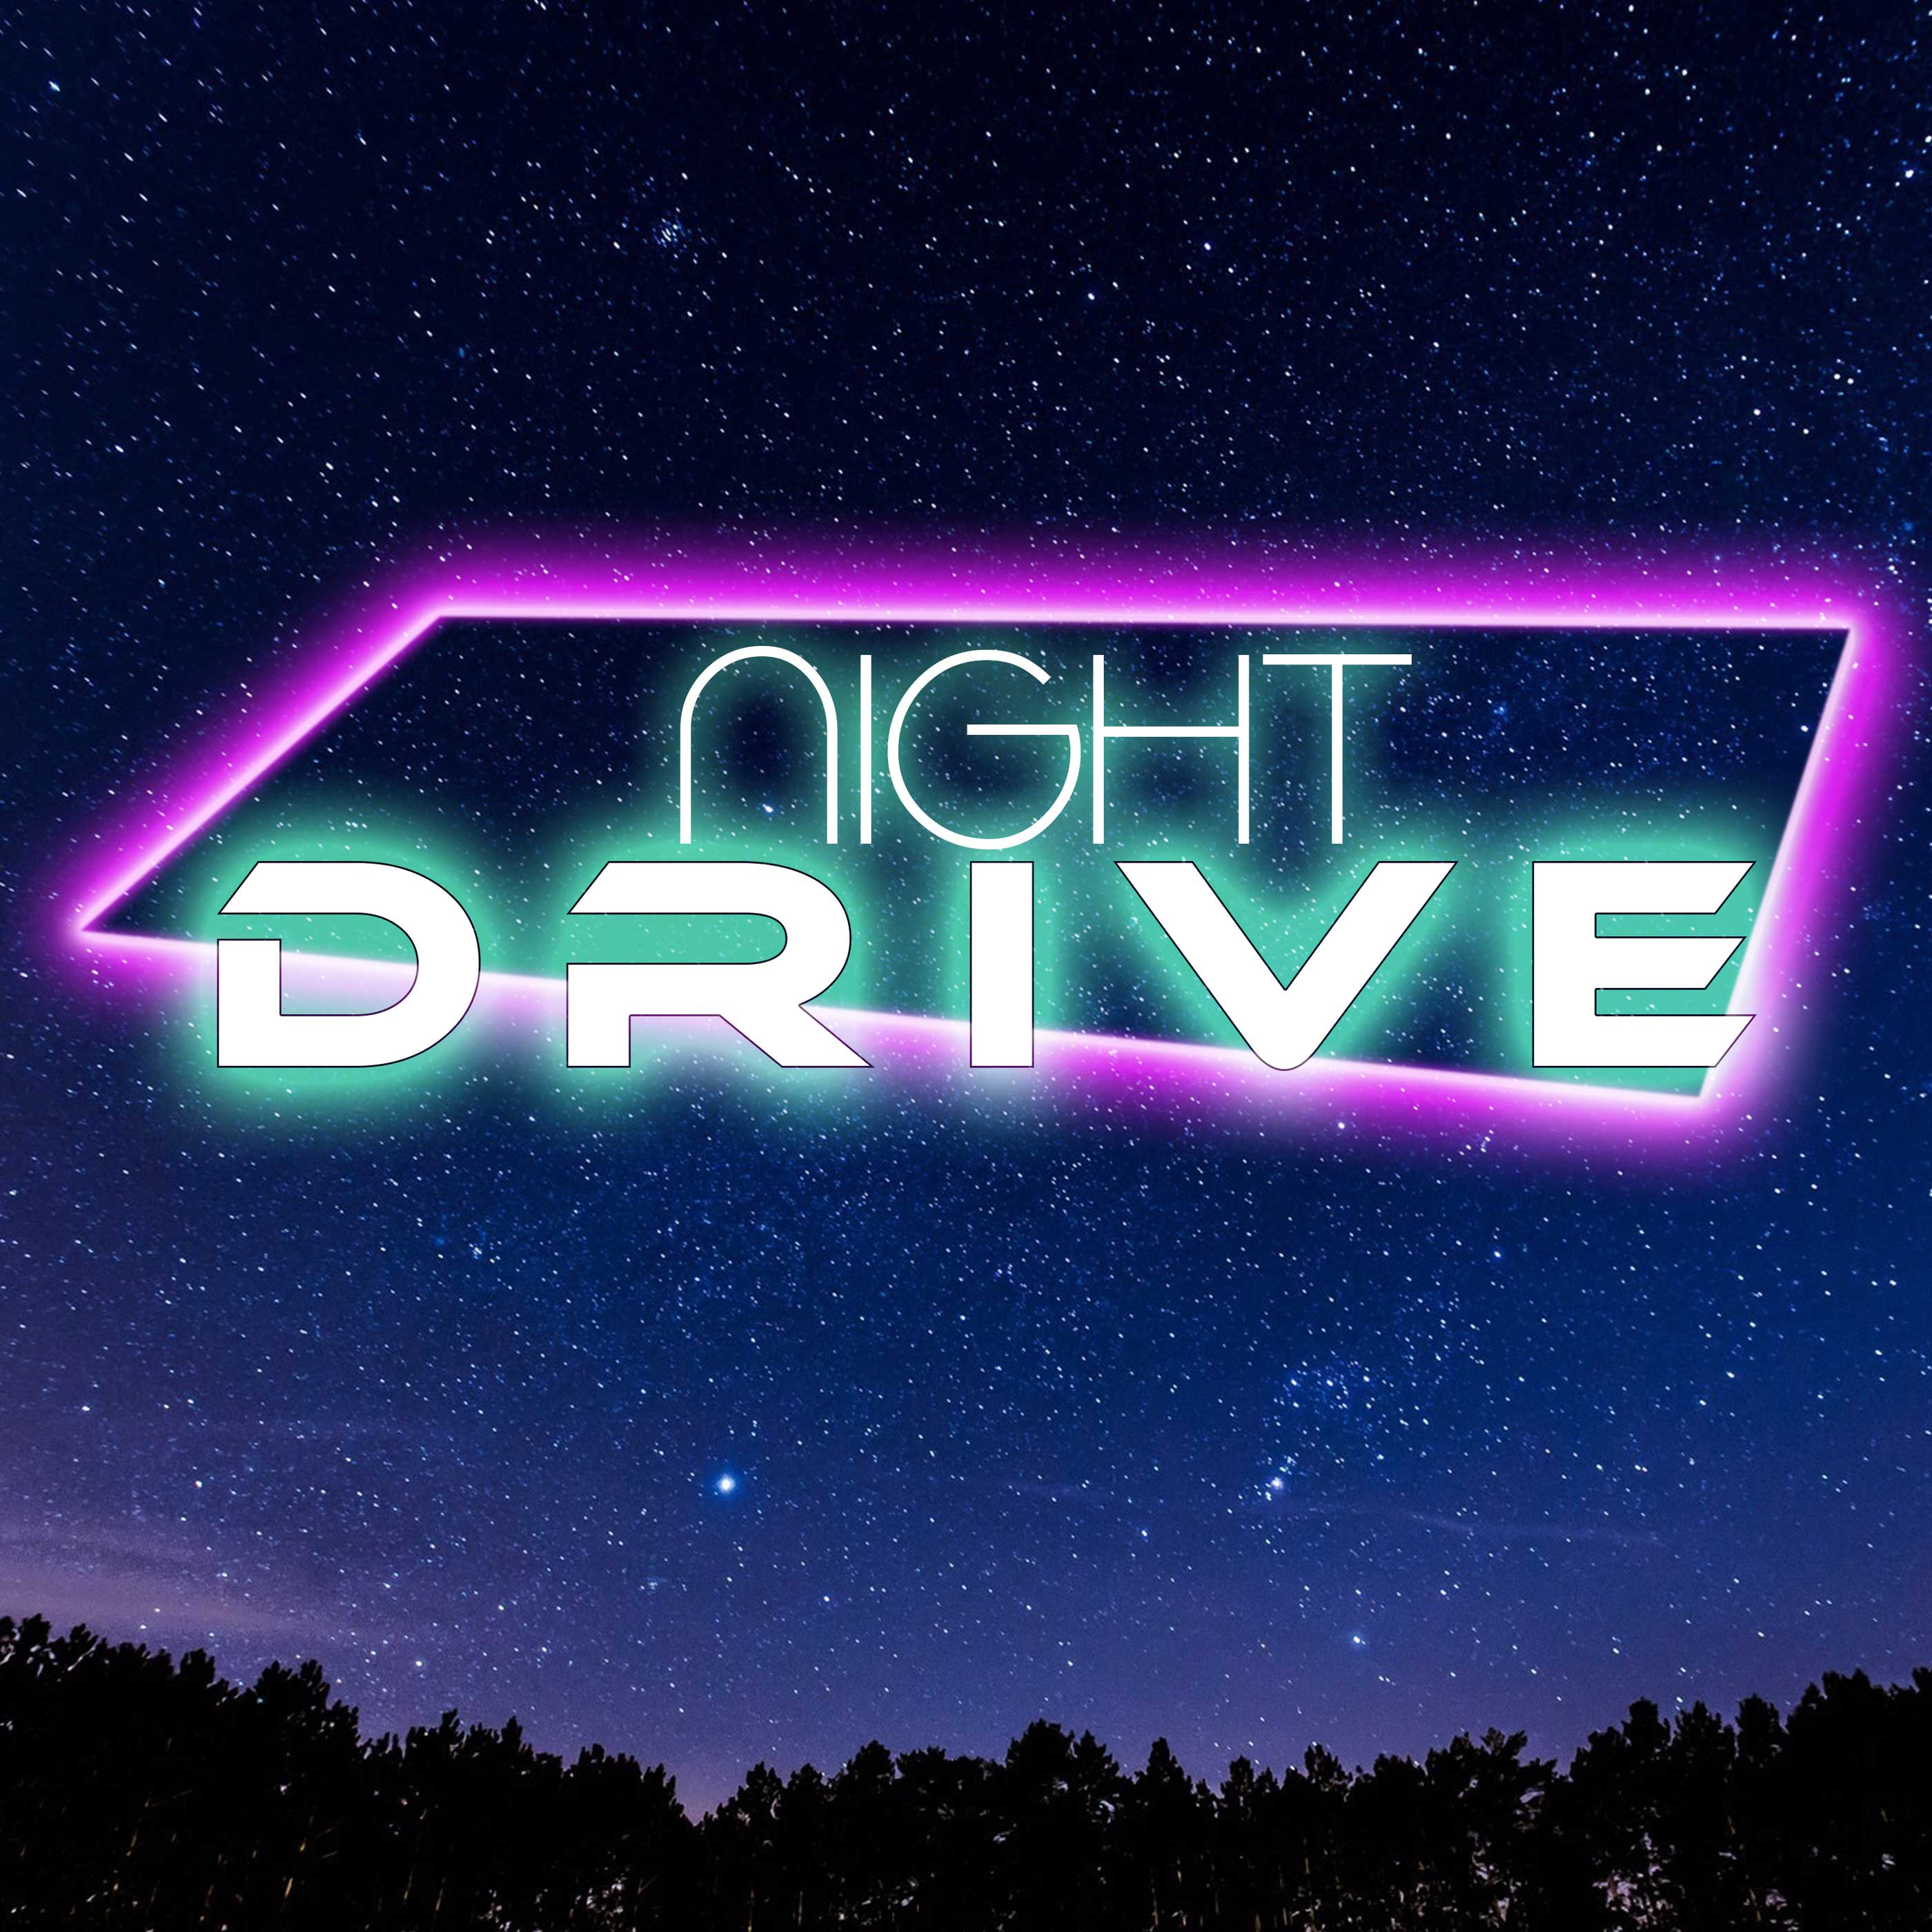 Nightdrive show art